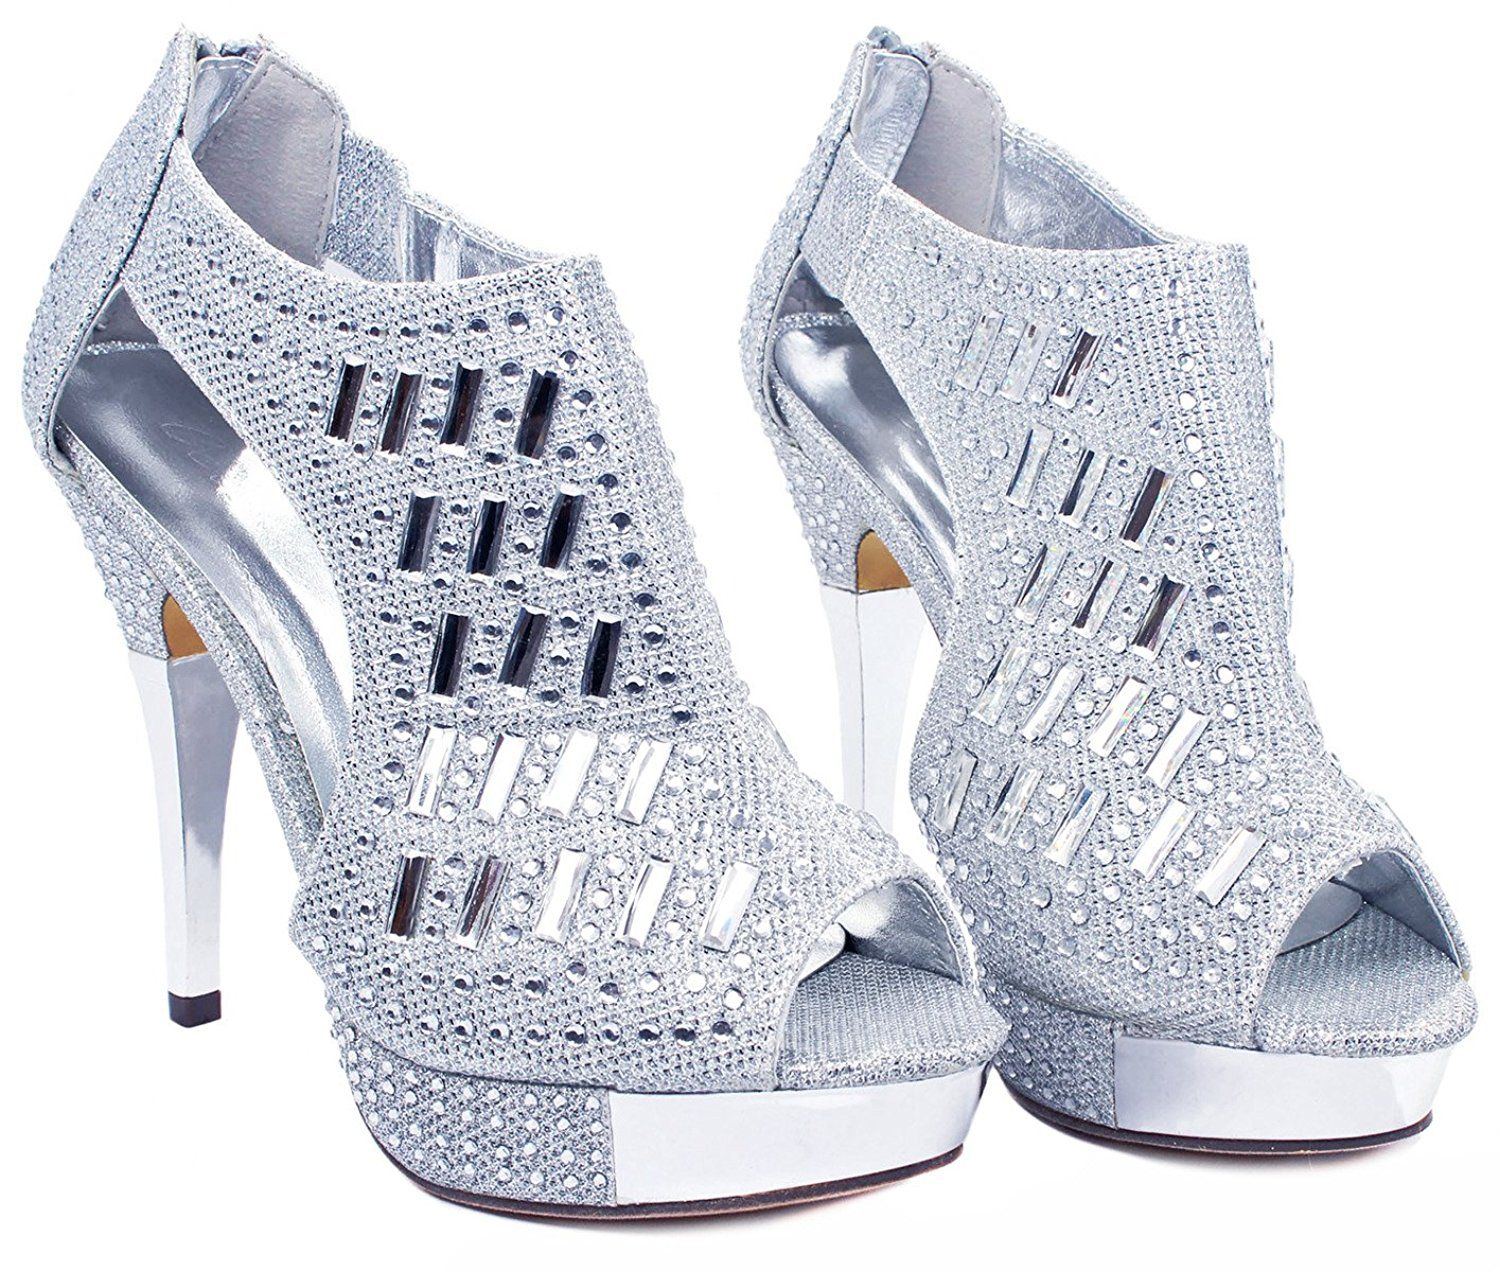 1cebf8ef24de JJF Shoes Women Glitter Crystal Rhinestone Peep Toe Platform High Heel  Evening Dress Bootie Sandals ** To view further for this item, visit the  image link.